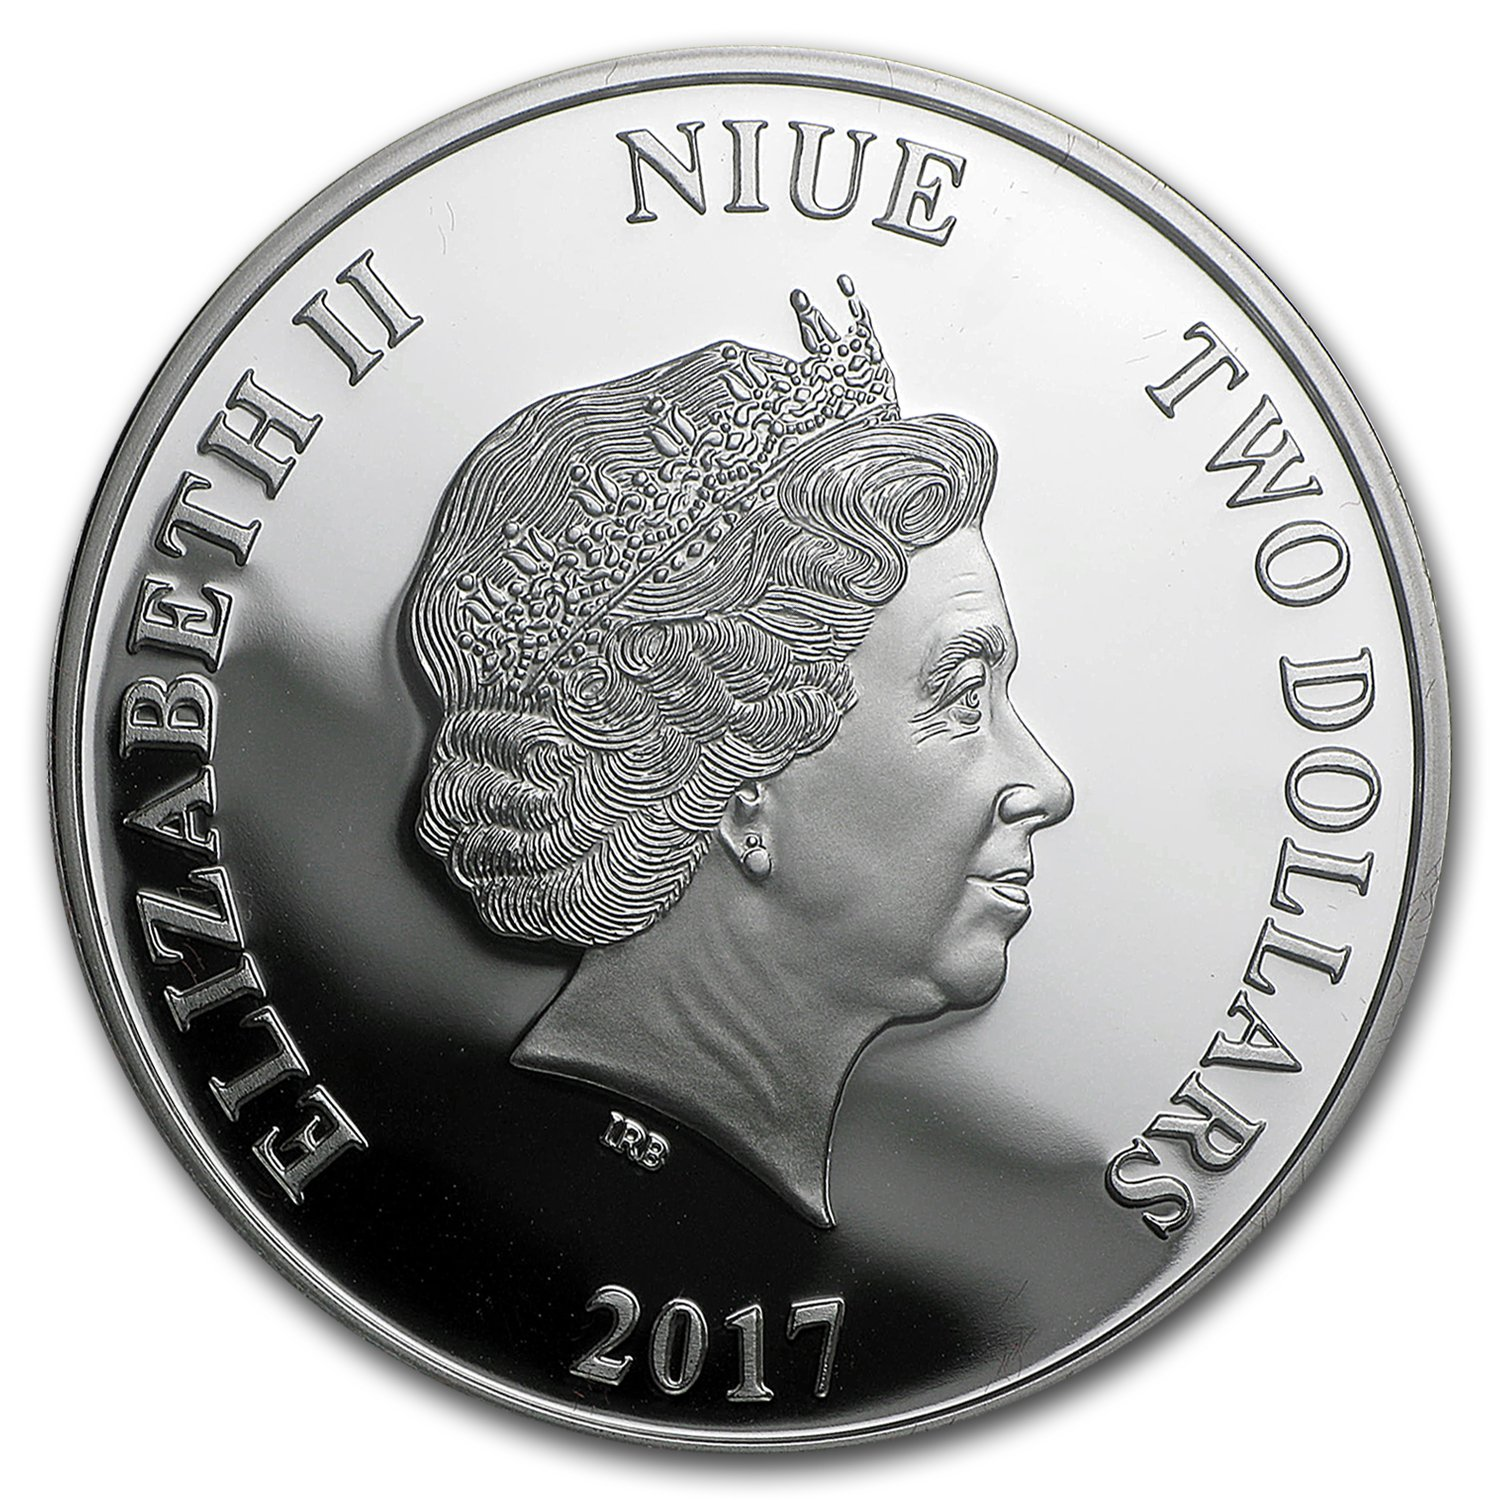 SKU #103374 2017 New Zealand 1 oz Proof Silver $2 Lunar Year of the Rooster